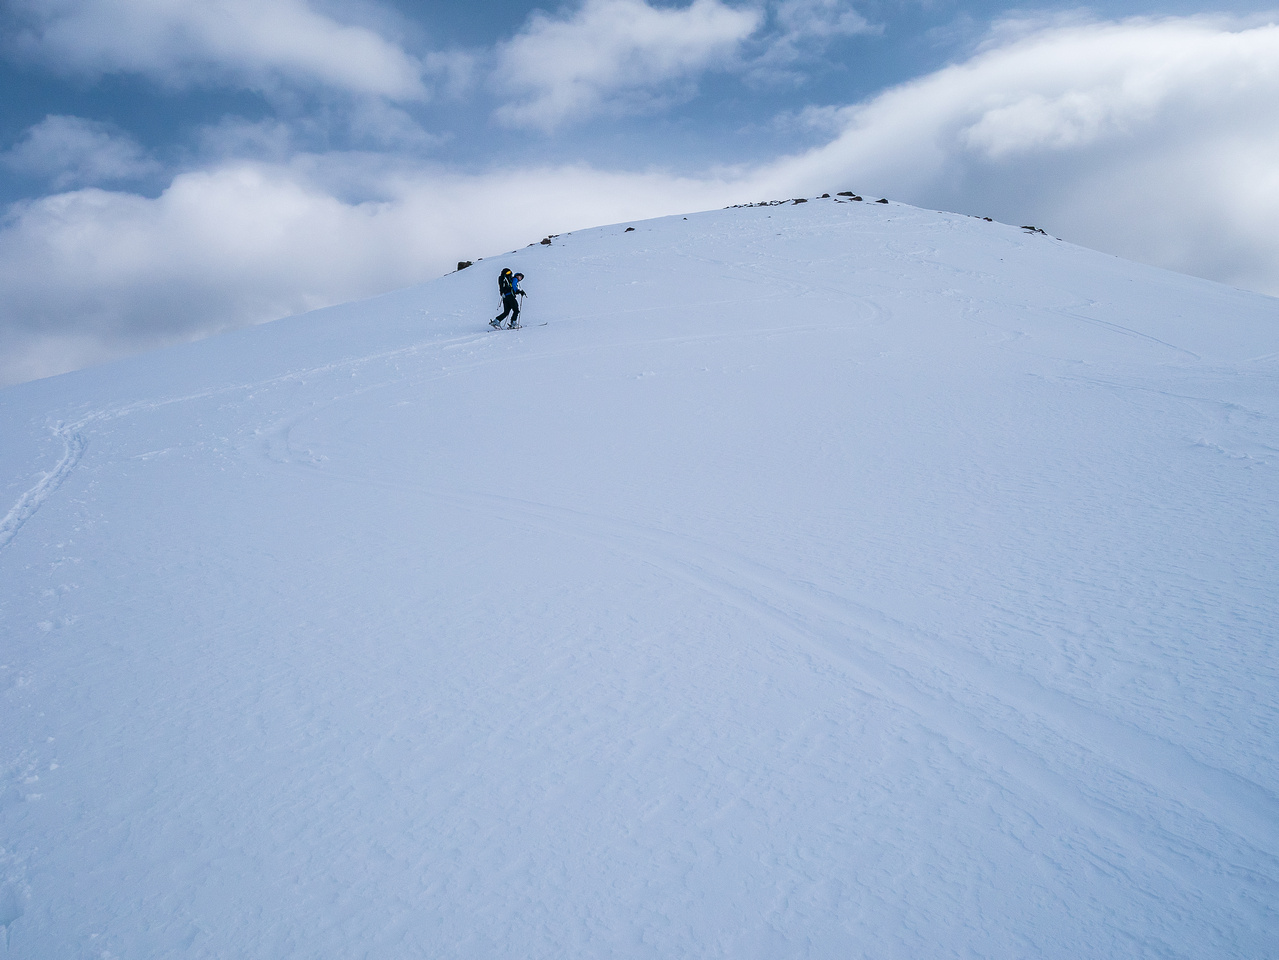 We skied as high as feasible - we could have skied higher but were already hitting rocks on the way down.